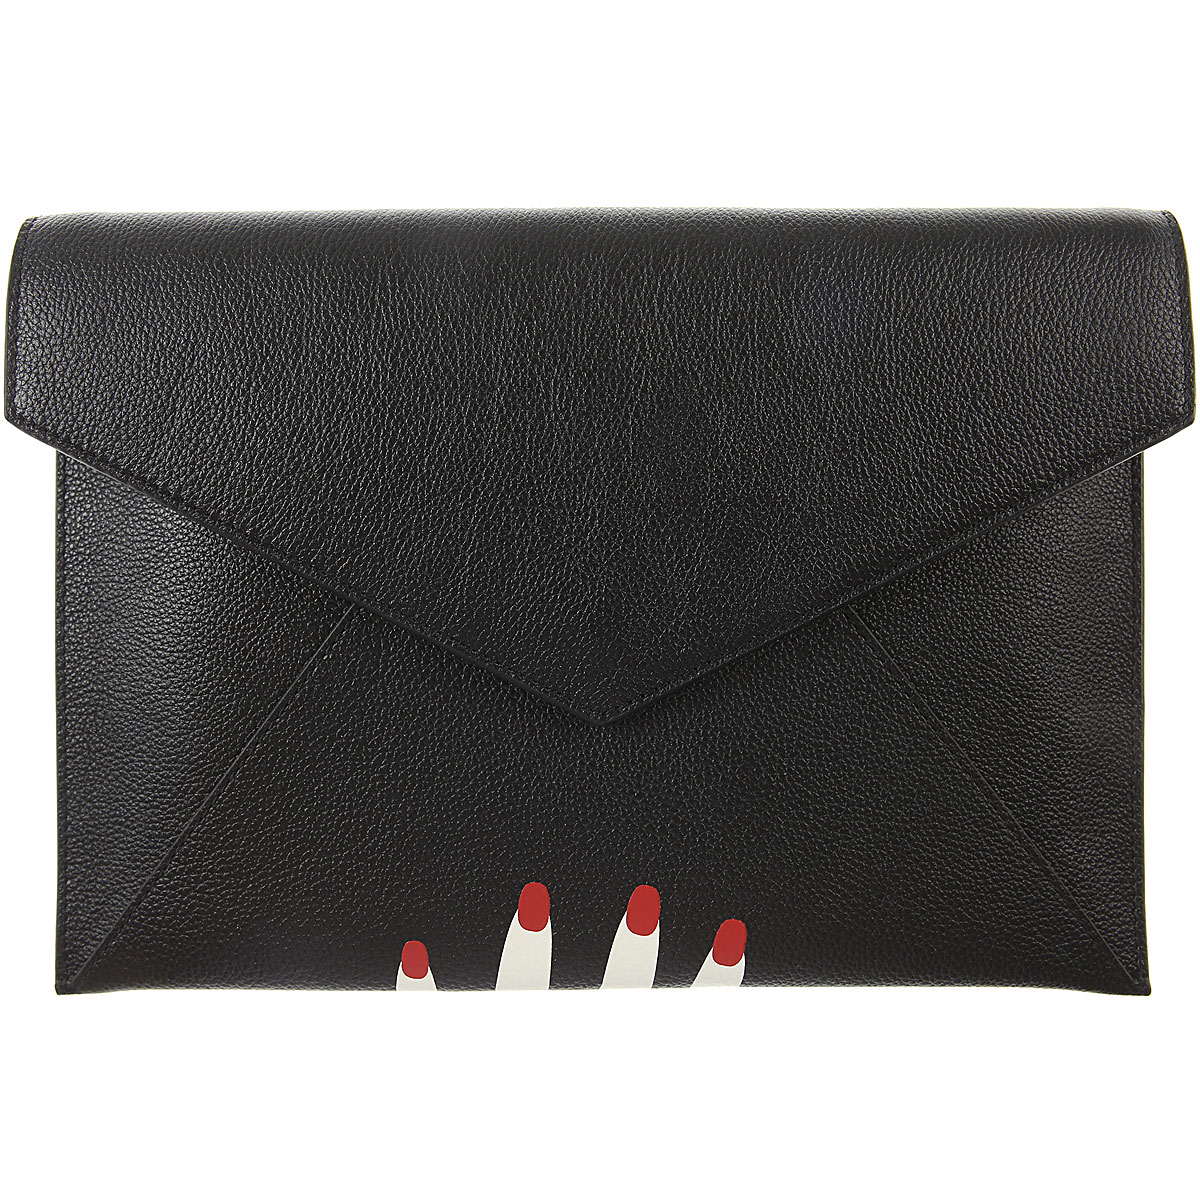 Image of Lulu Guinness Clutch Bag, Black, Leather, 2017